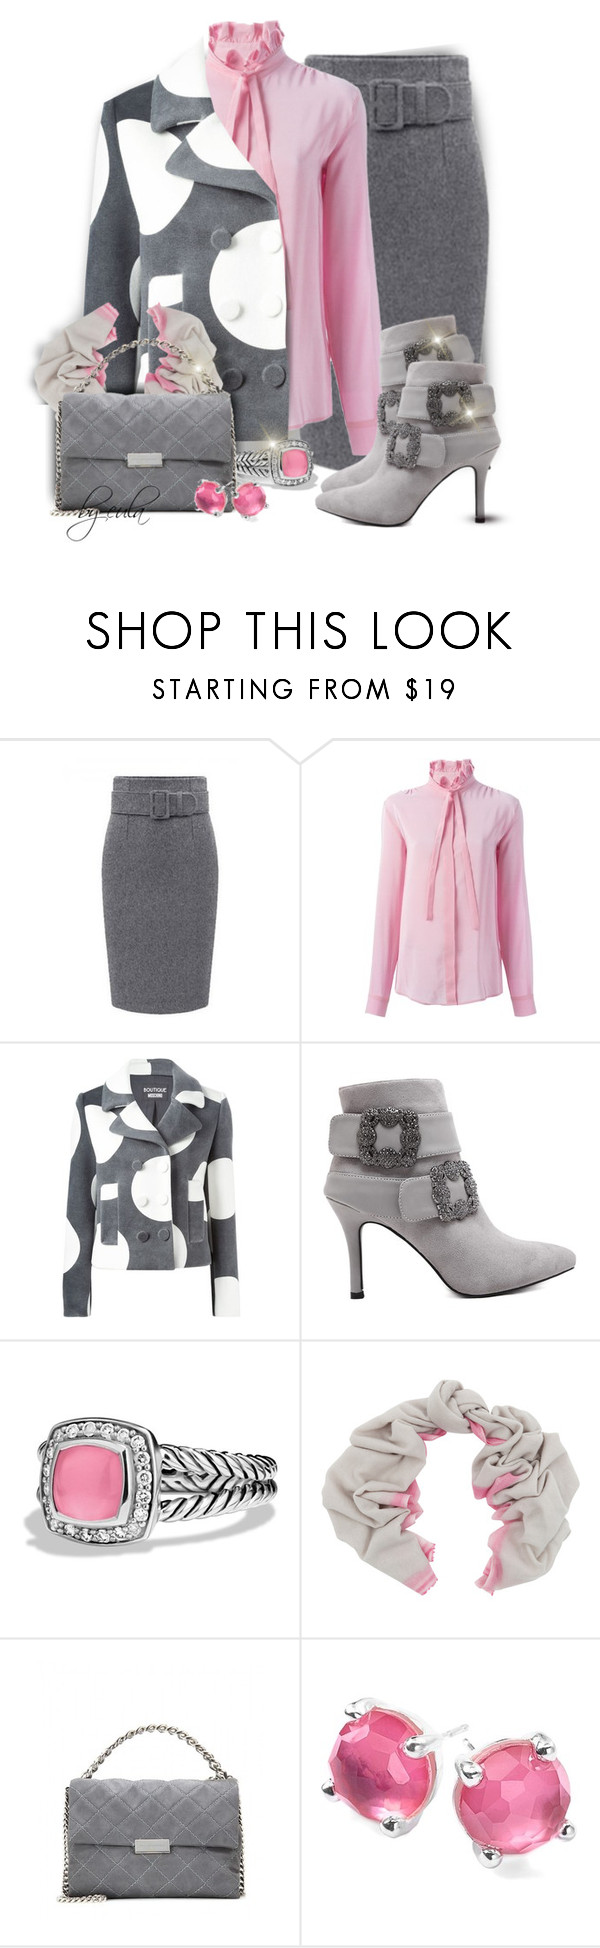 """""""Spots and Dots, Oh My!! (Outfit Only)"""" by eula-eldridge-tolliver ❤ liked on Polyvore featuring MSGM, Boutique Moschino, David Yurman, Bajra, STELLA McCARTNEY and Ippolita"""